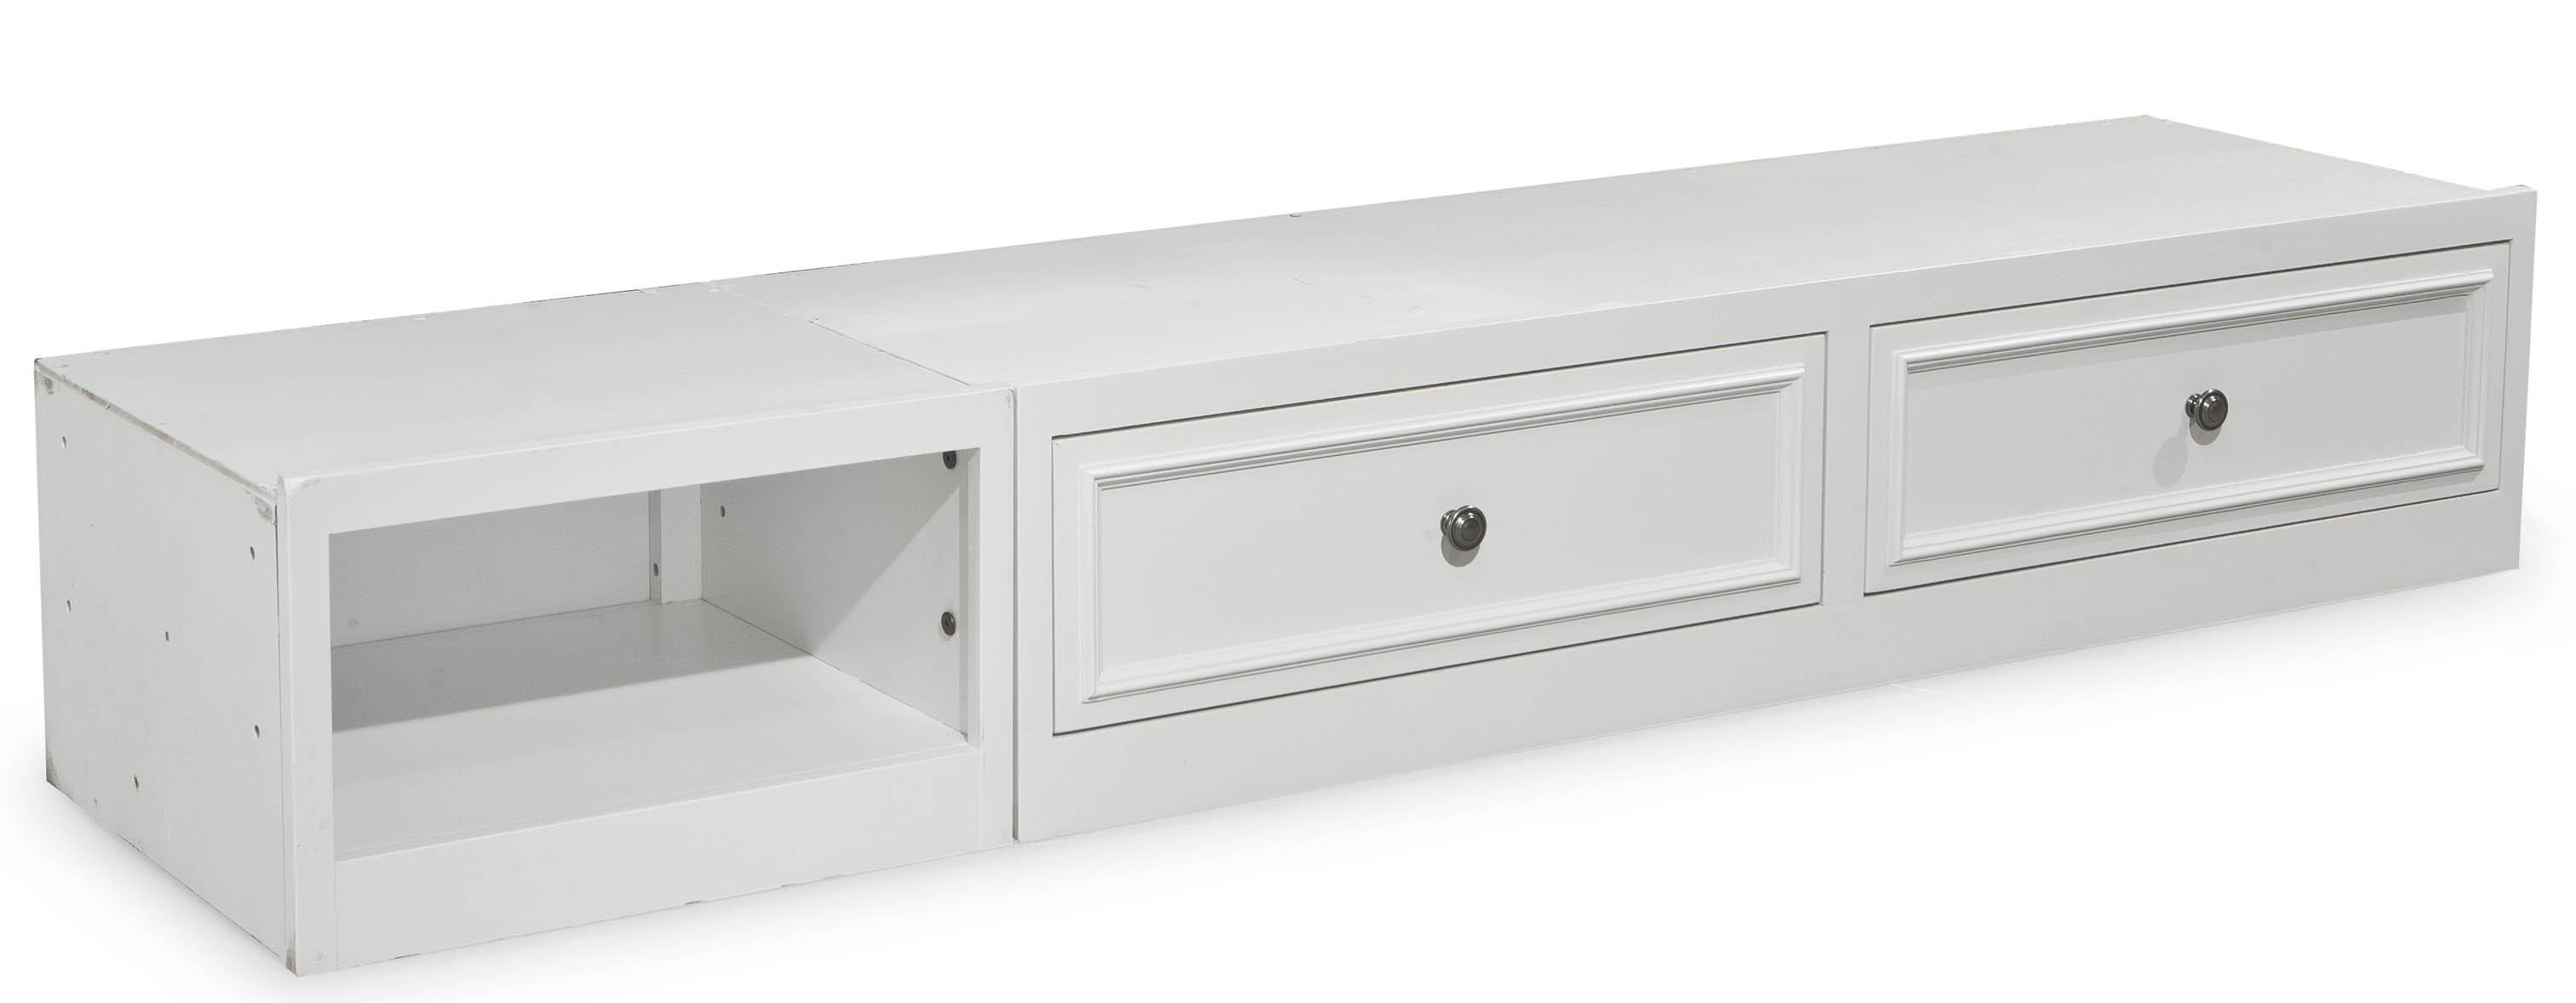 Storage Beds Australia Madison Underbed Storage Unit With 2 Drawers And 1 Open Compartment By Legacy Classic Kids At Wayside Furniture